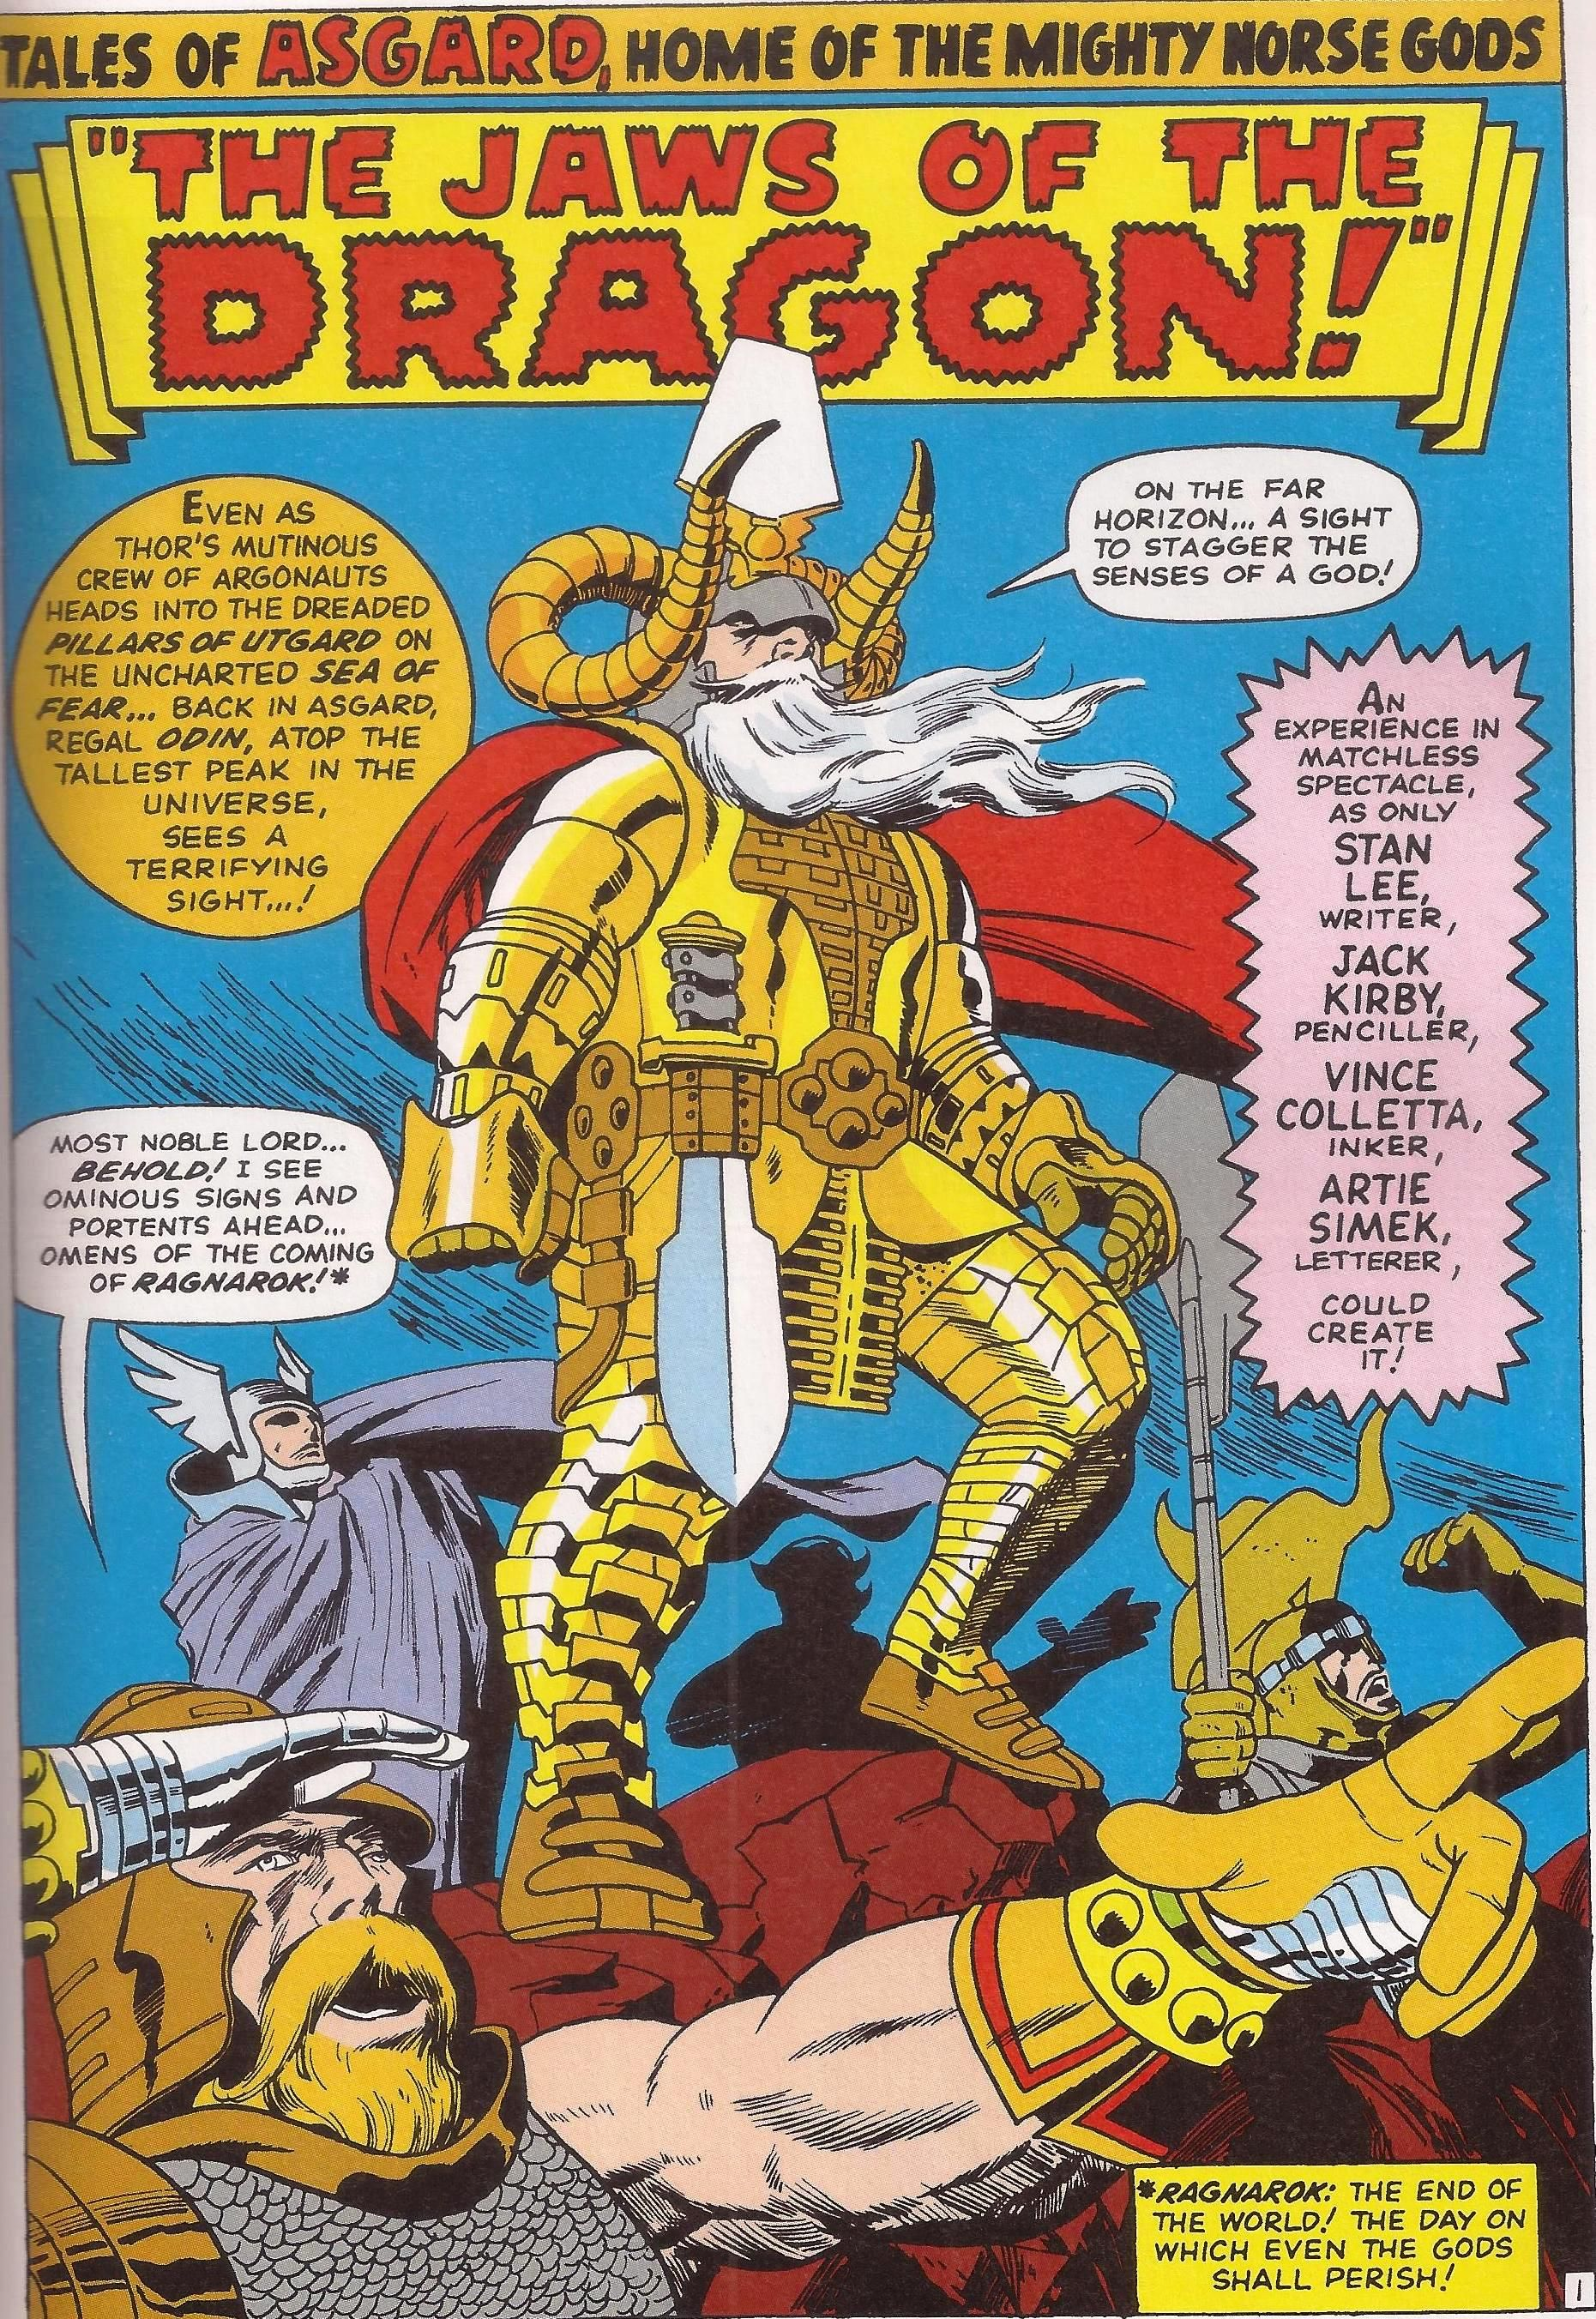 Super I love this regal uniform designed by Jack Kirby. This Odin is a OK68